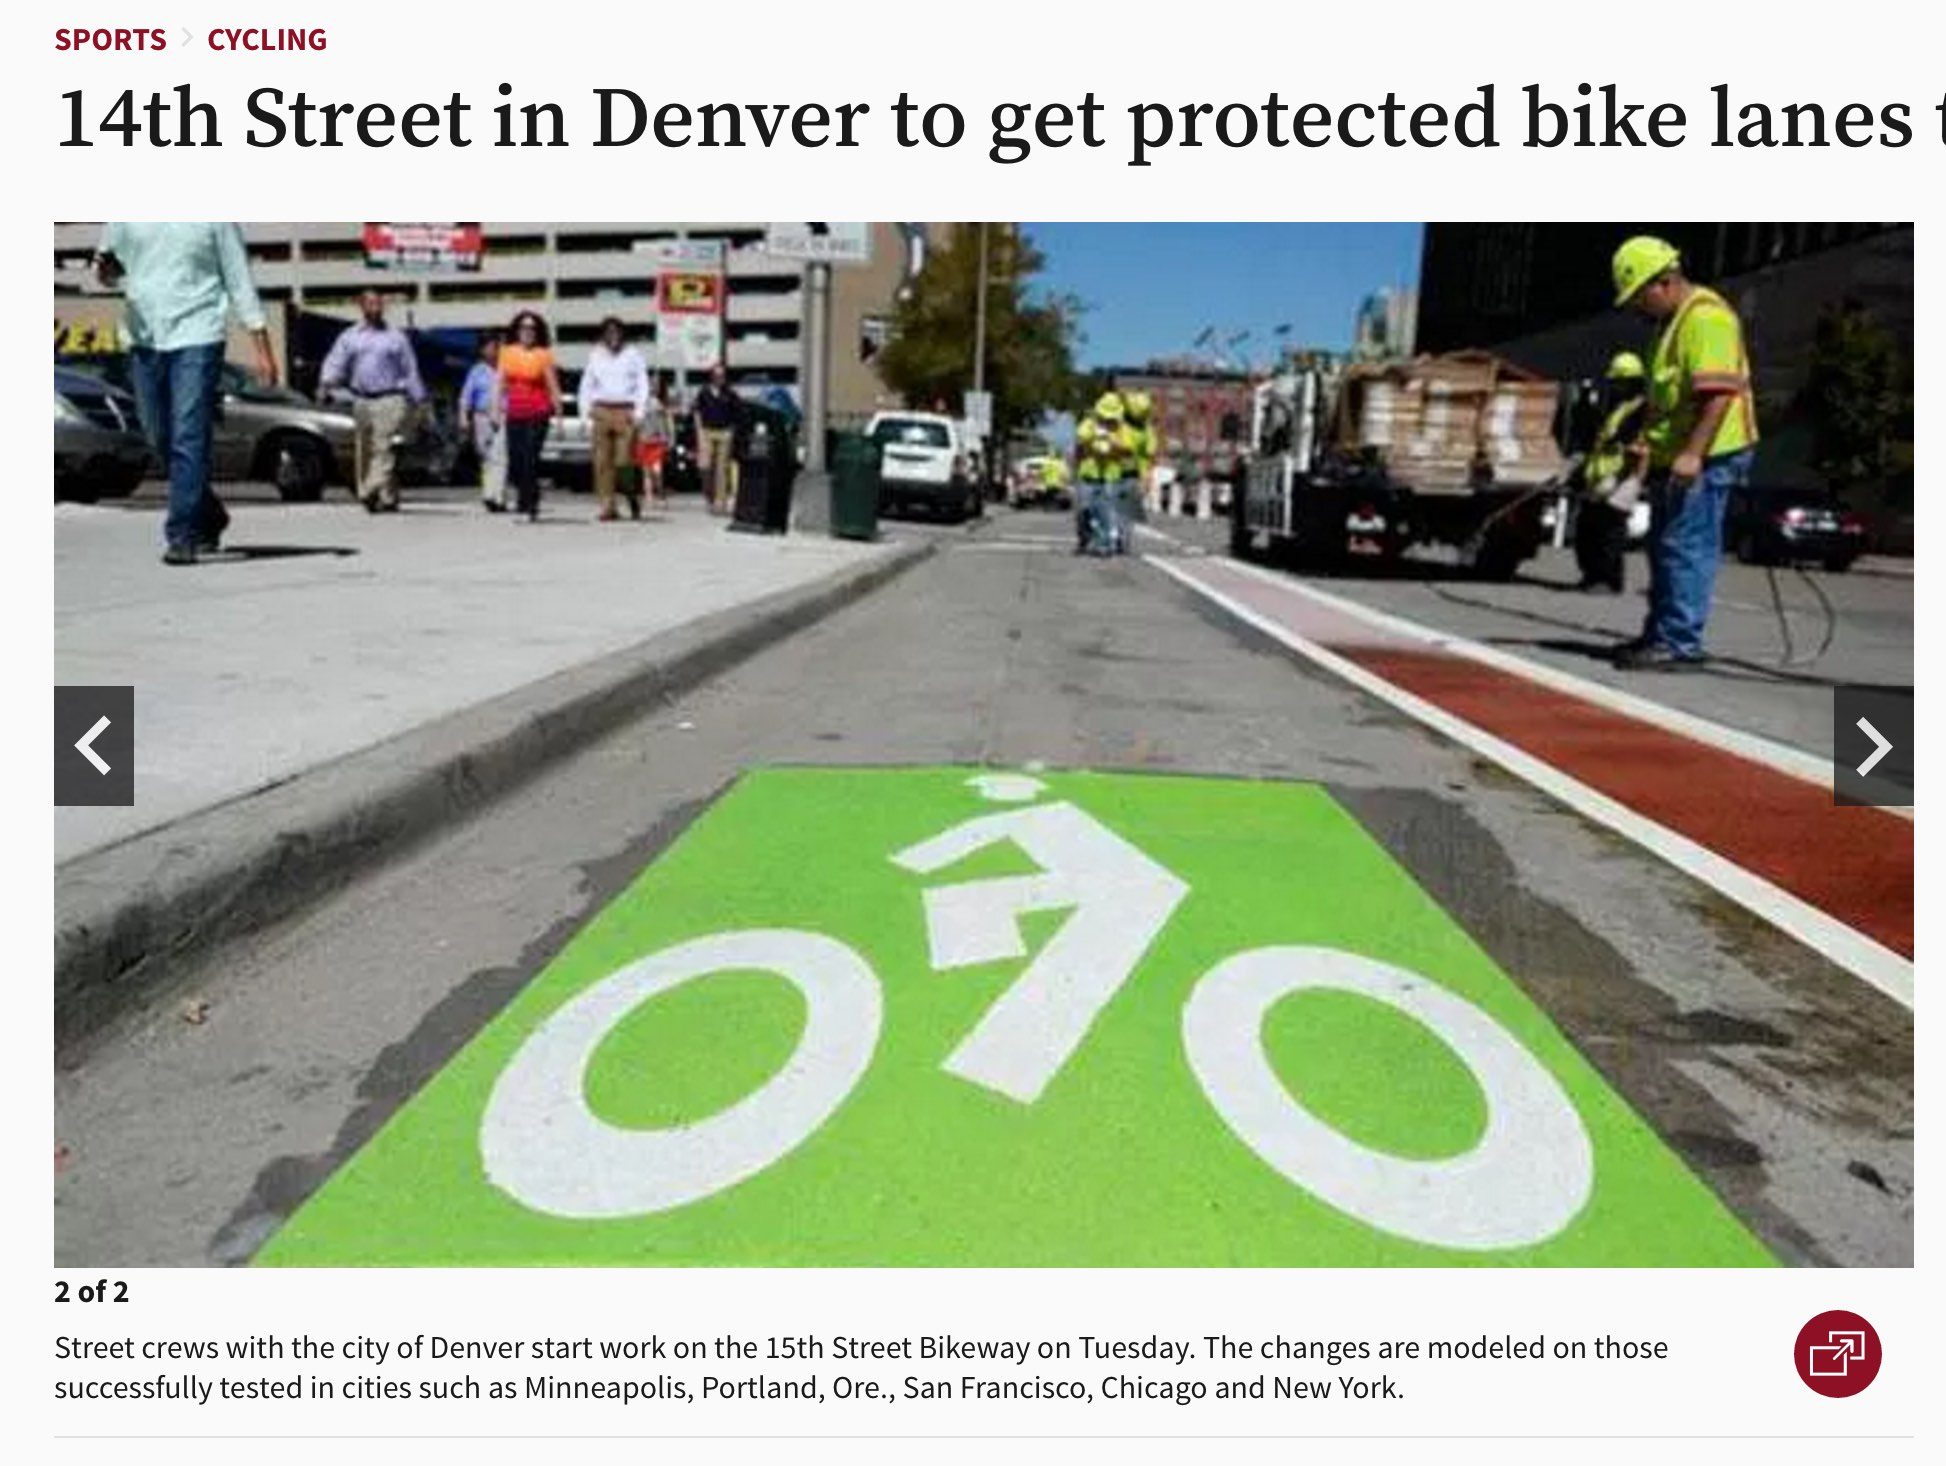 Denver's 15th Street Bikeway was partly funded via a crowdfunding campaign.